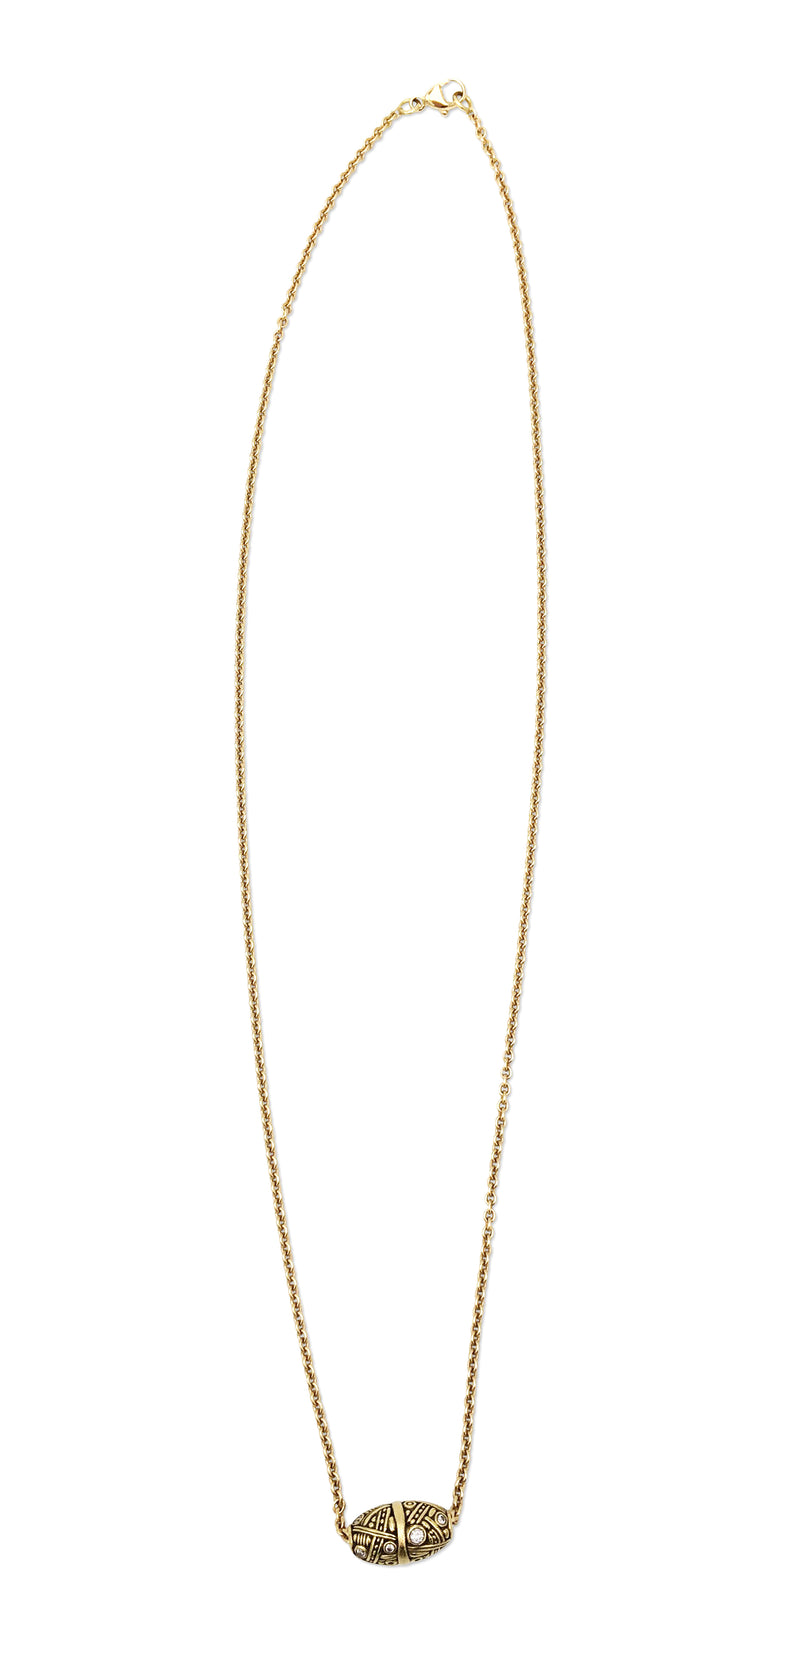 Alex Sepkus Gold and Diamond Bead Pendant Necklace